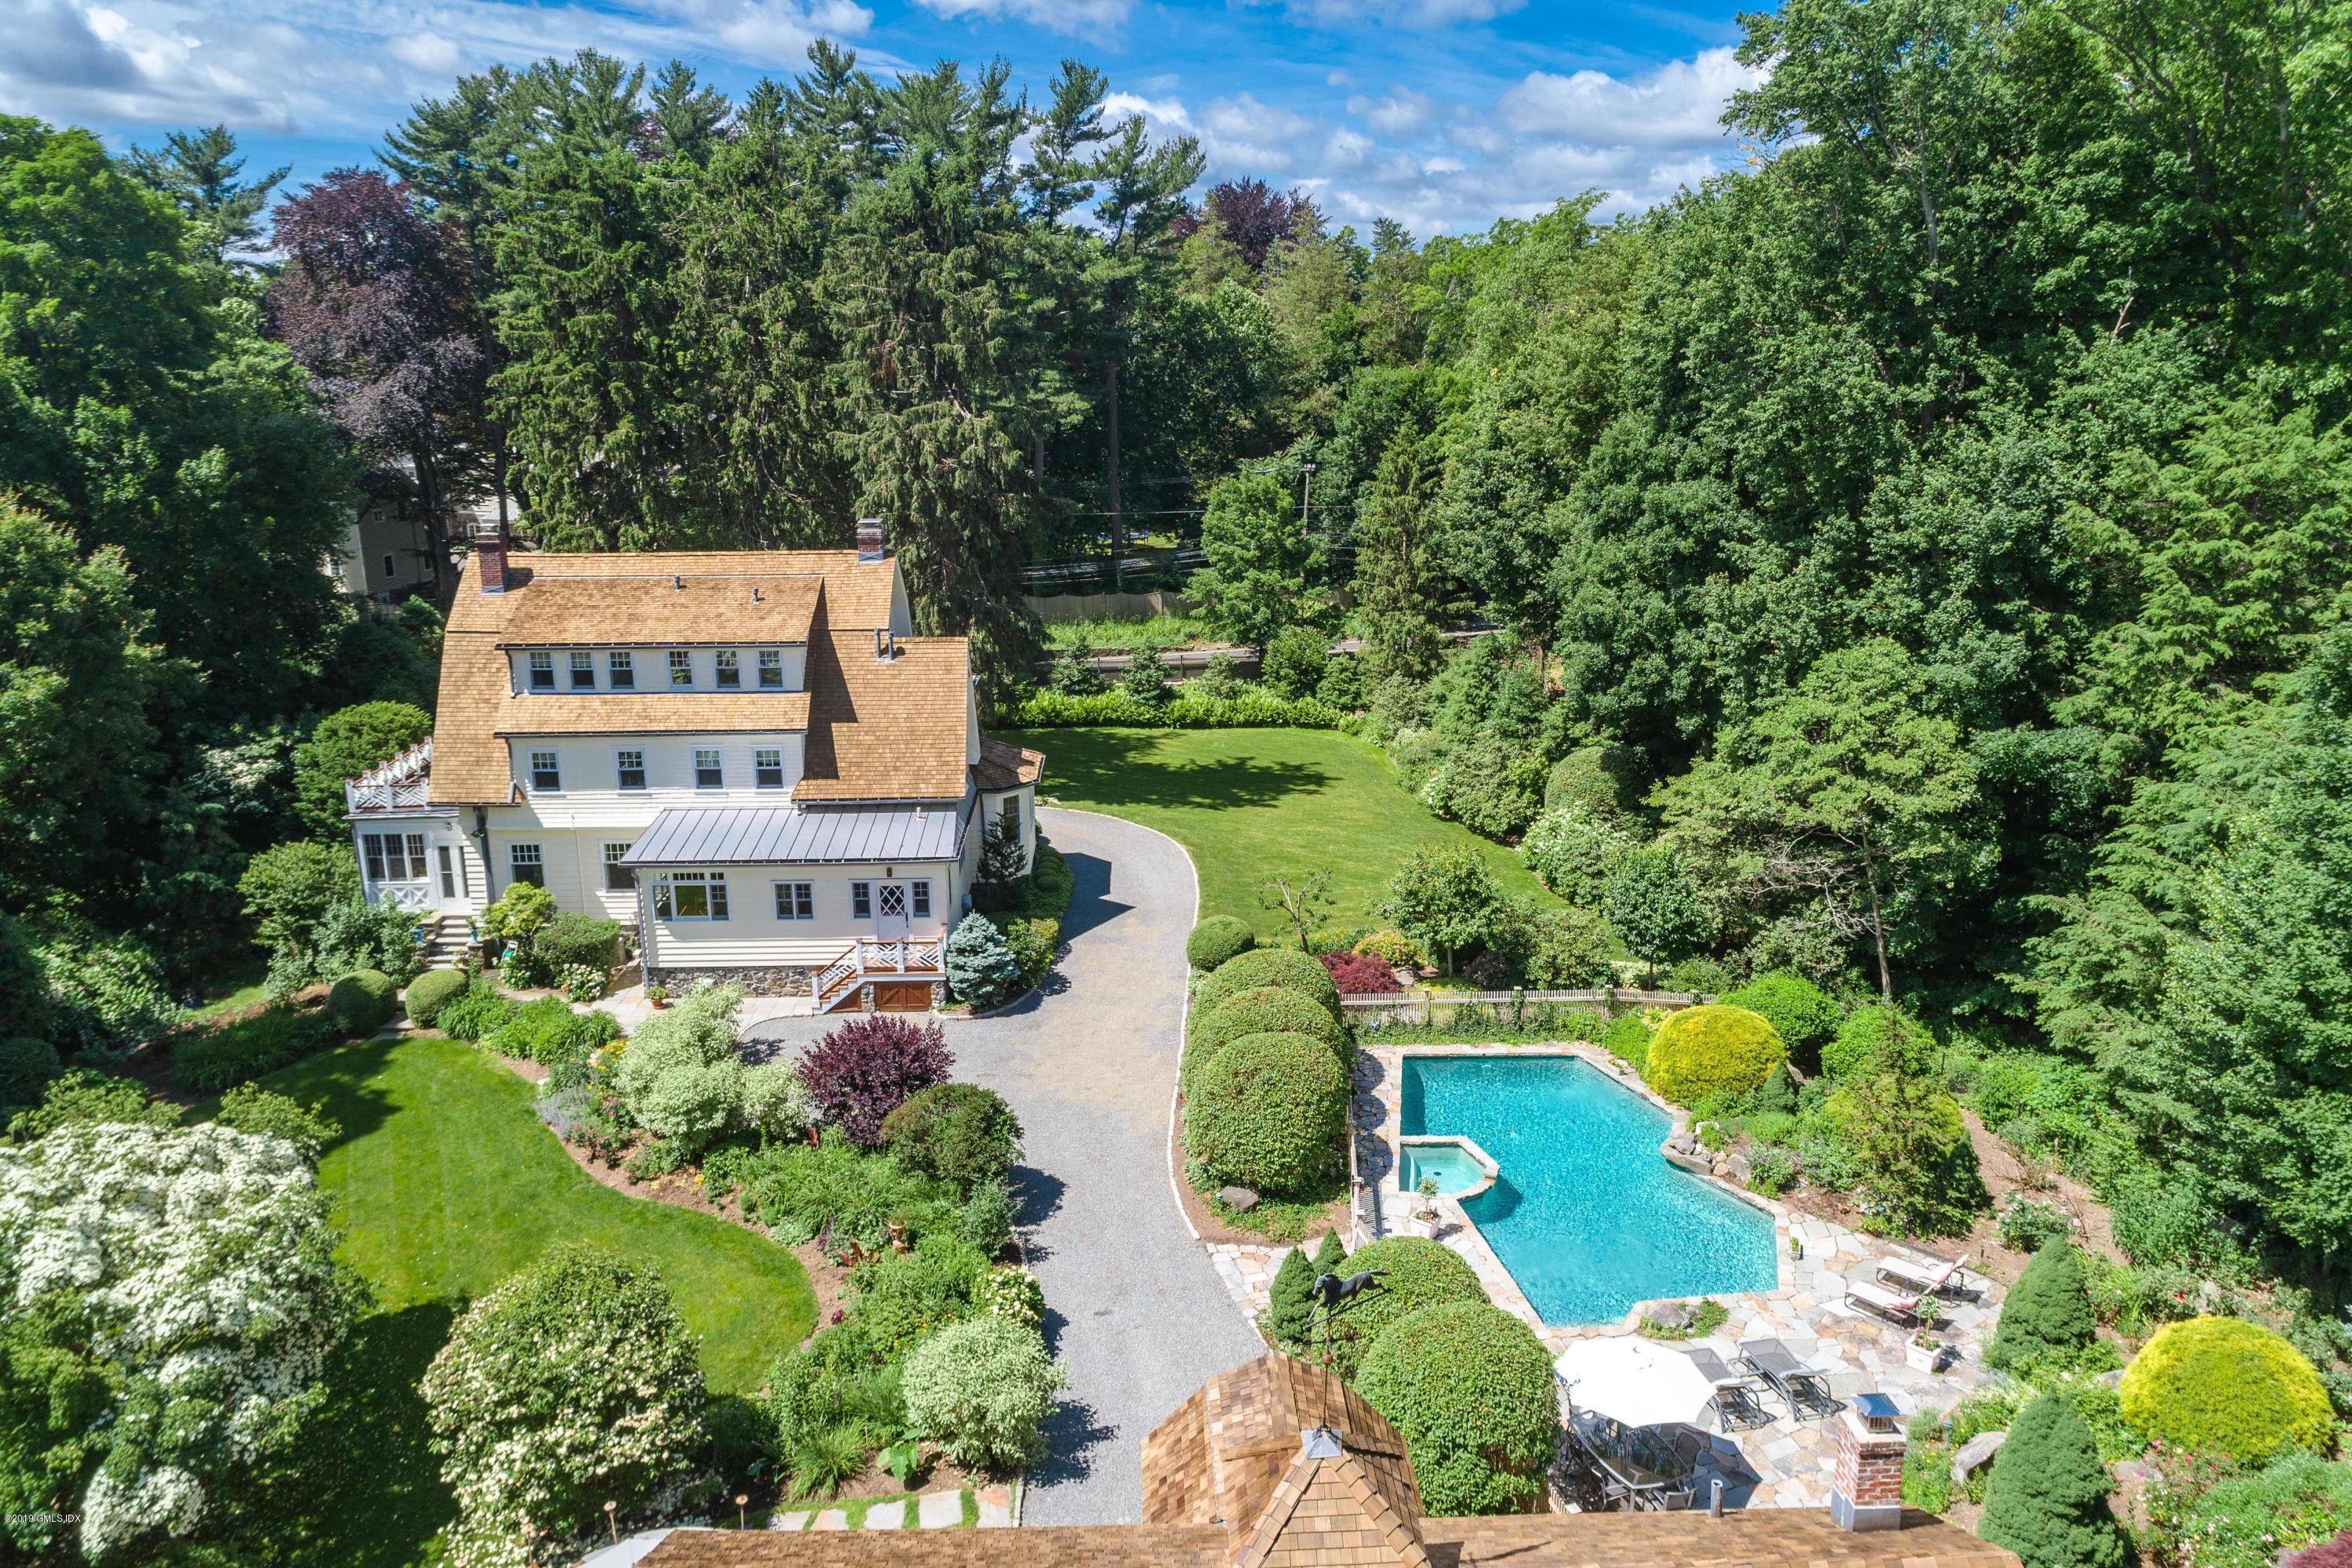 63 Glenville Road,Greenwich,Connecticut 06831,7 Bedrooms Bedrooms,6 BathroomsBathrooms,Single family,Glenville,105386